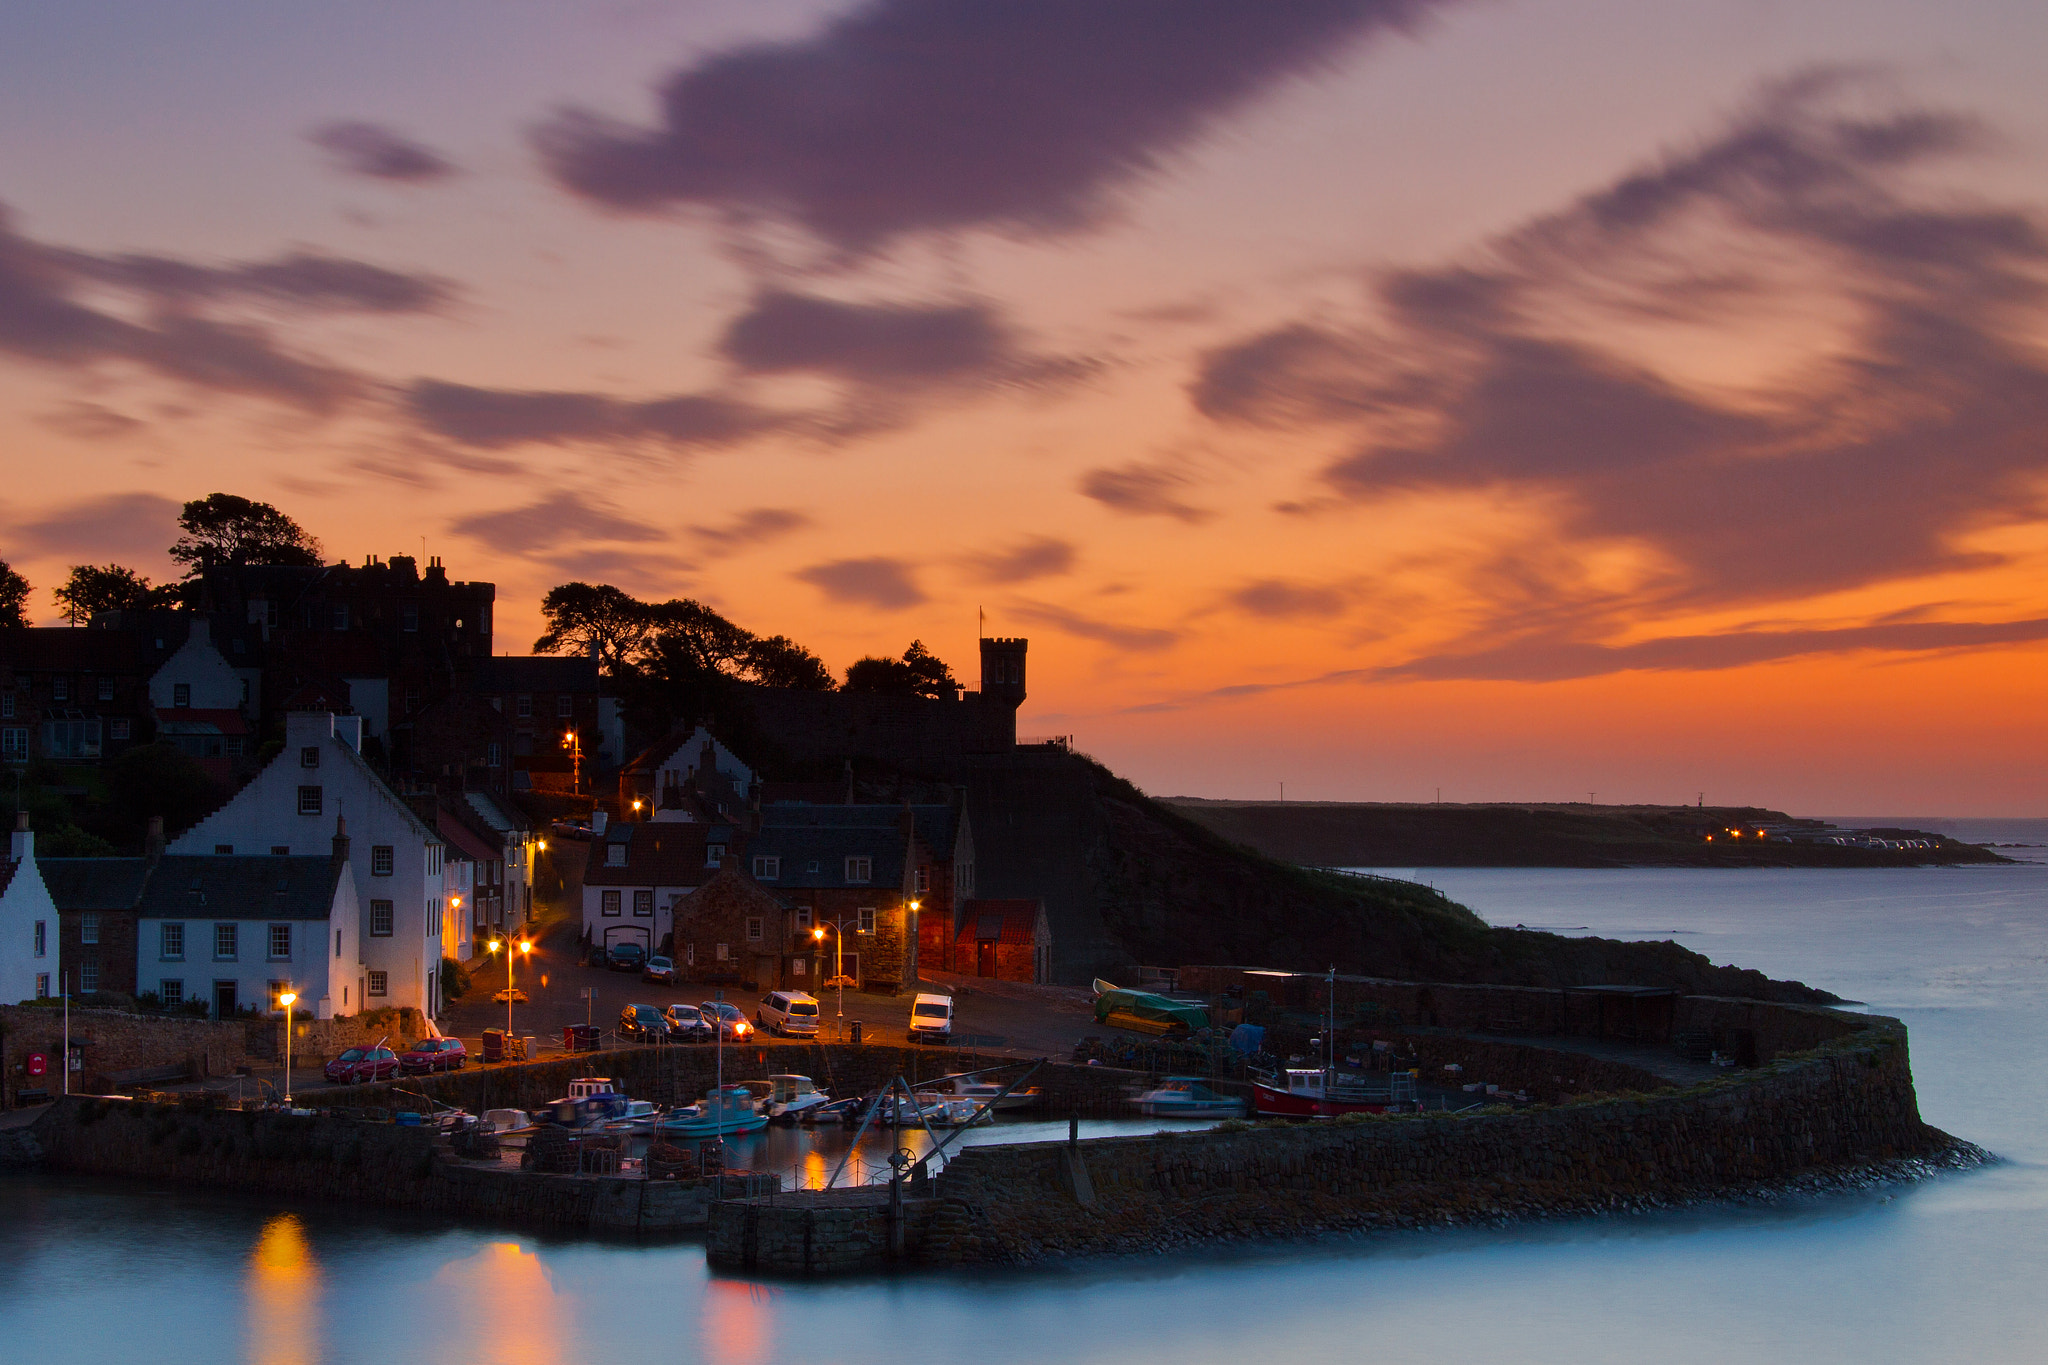 Photograph Harbour Lights by Simon Cameron on 500px